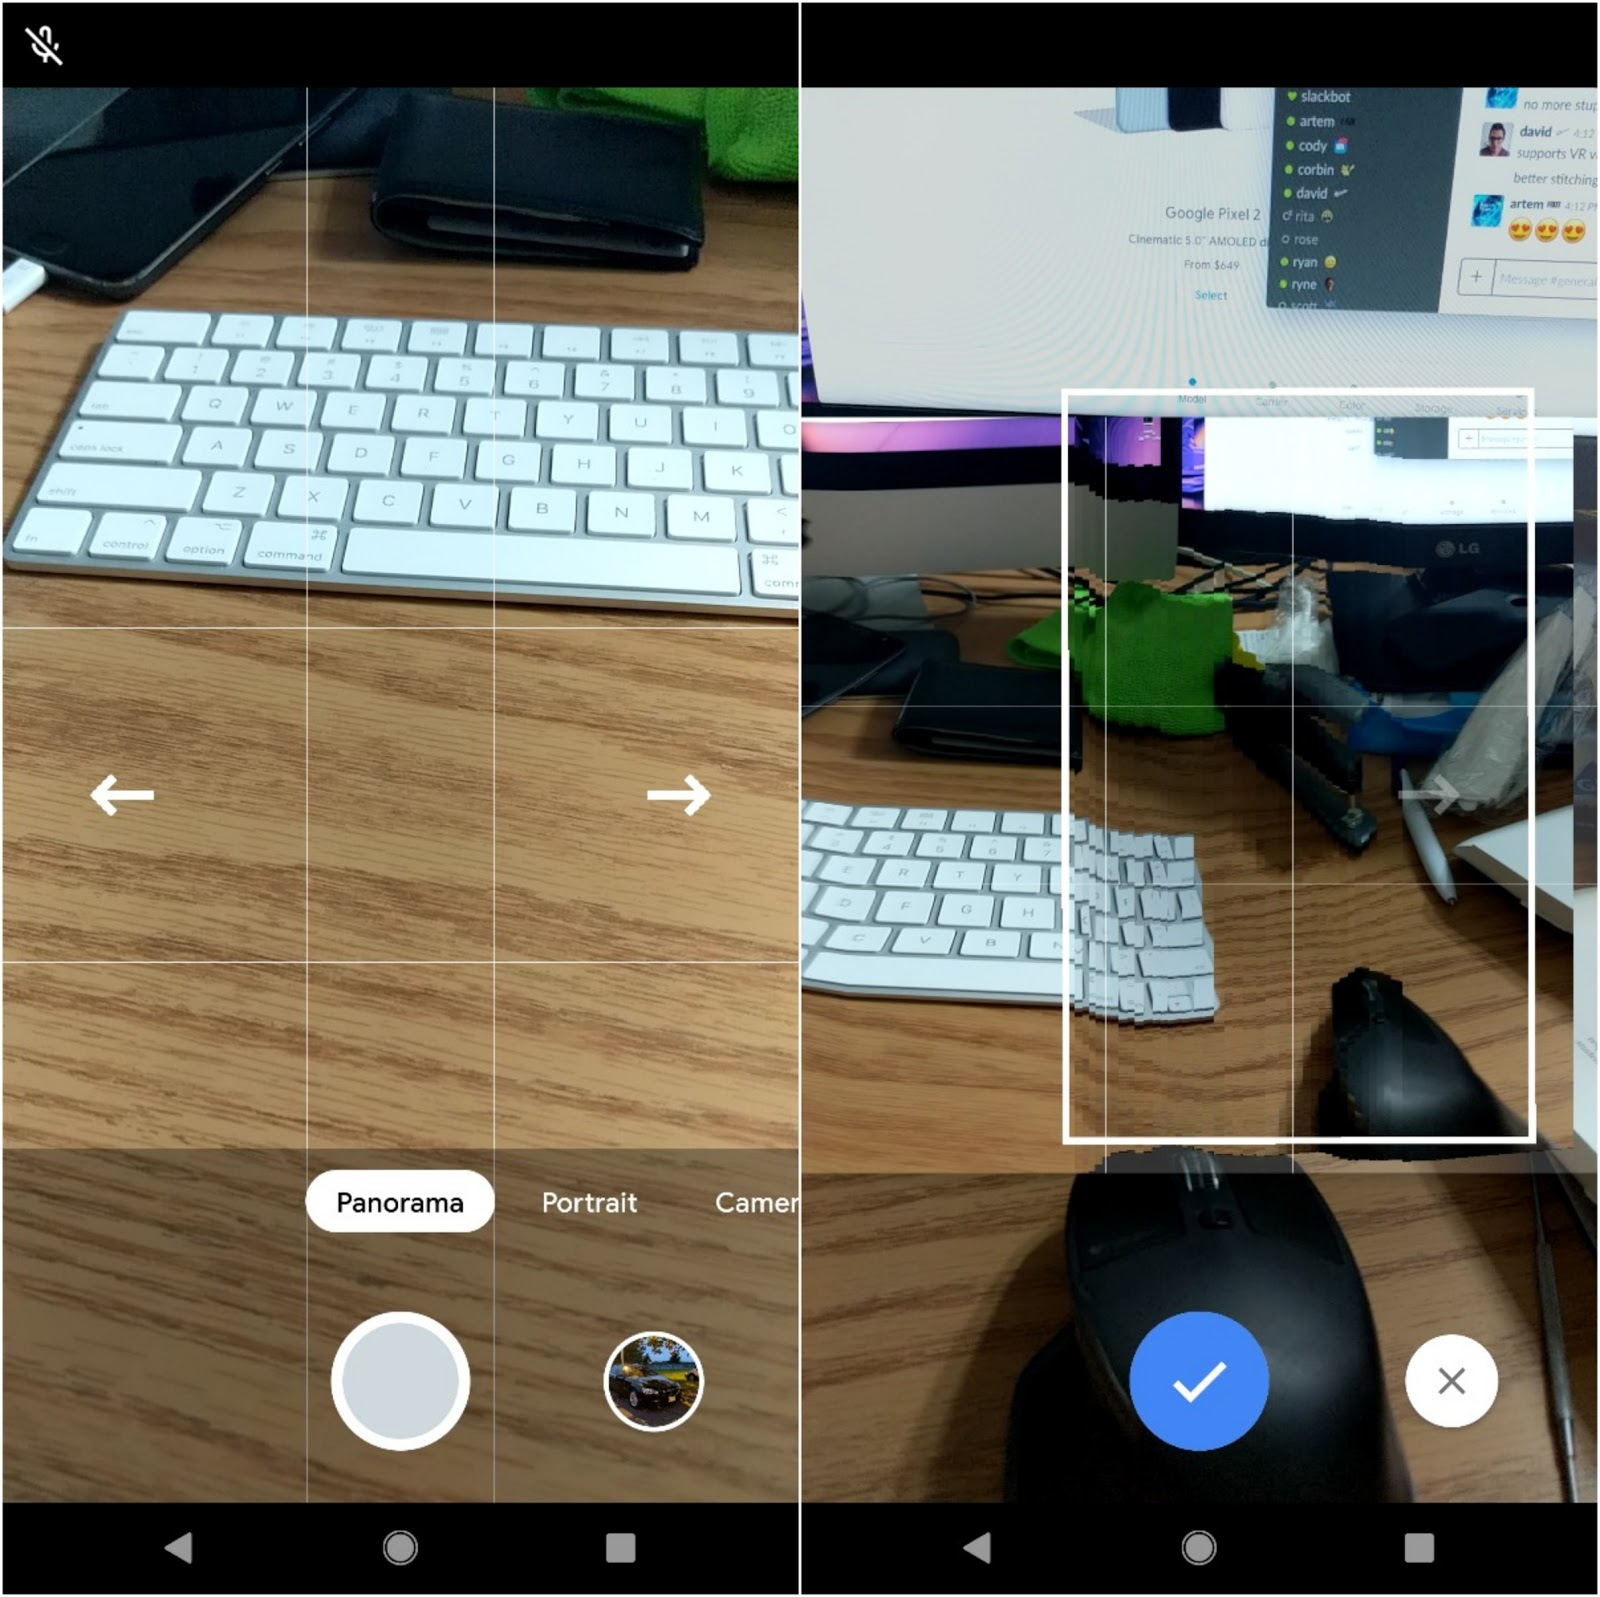 APK] Pixel 3's Google Camera Brings New UI, New Panorama